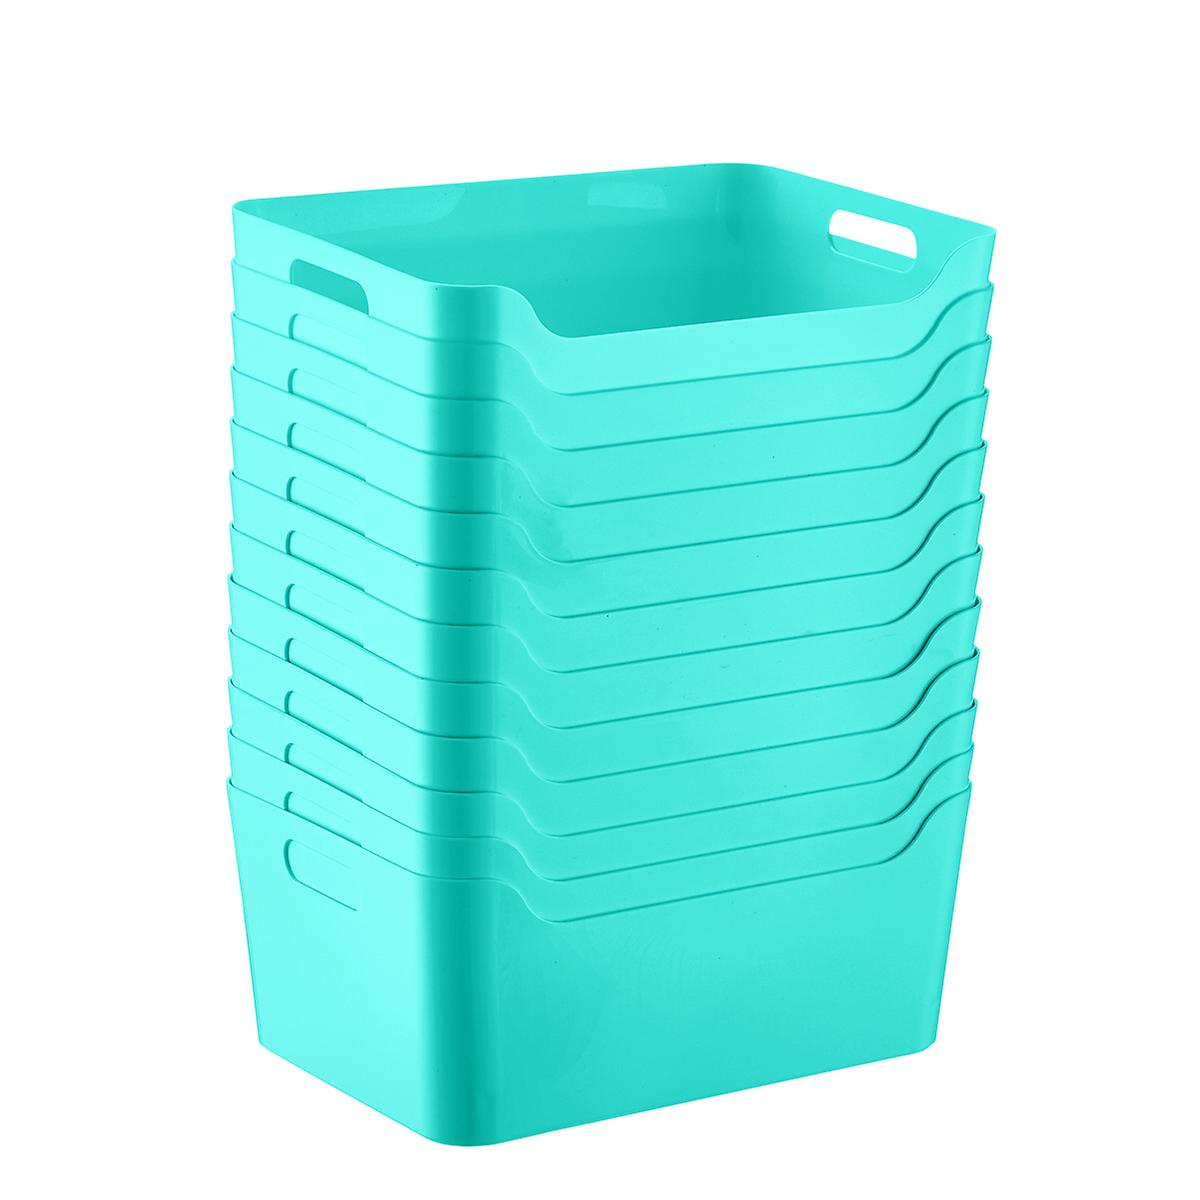 Case of 12 Aqua Plastic Storage Bins with Handles